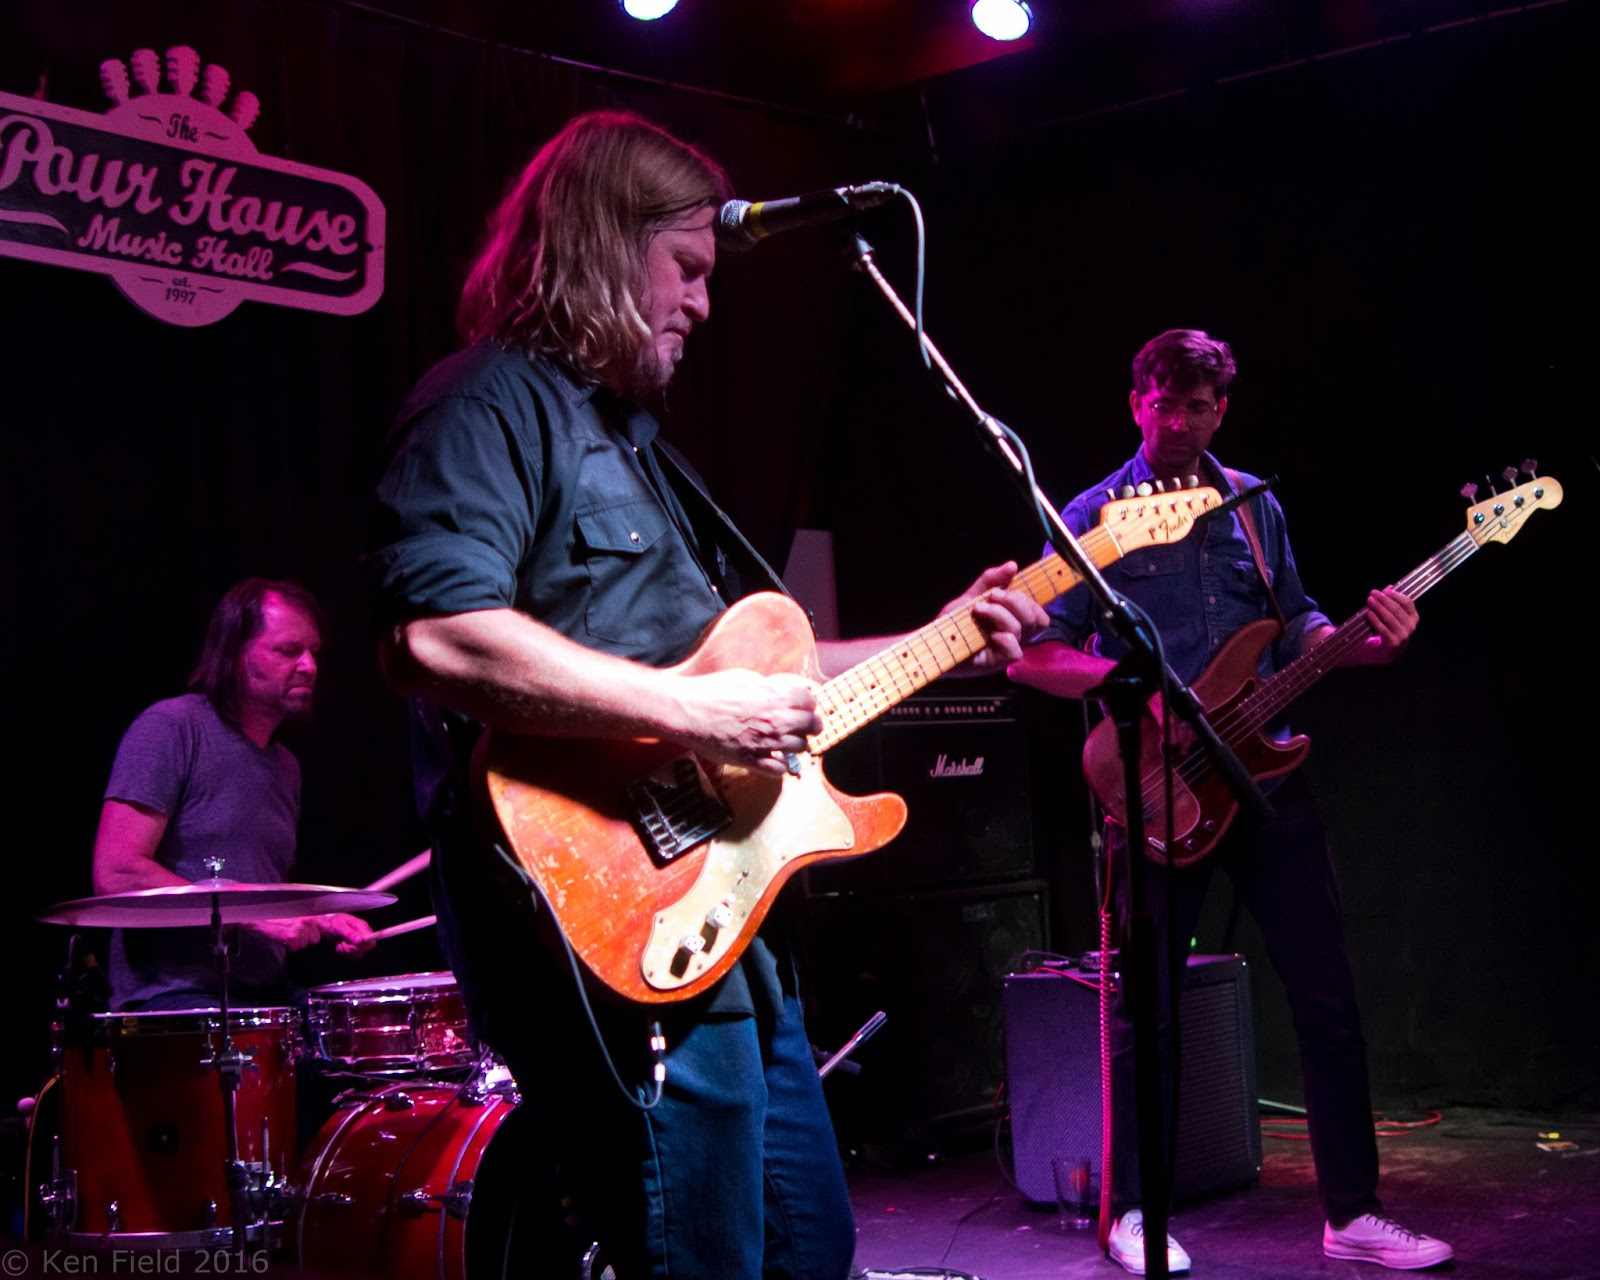 The Greg Humphreys Electric Trio performing at [[The Pour House Music Hall]], Raleigh, North Carolina in 2016.<br>Photo by Kfp Foto, used by permission